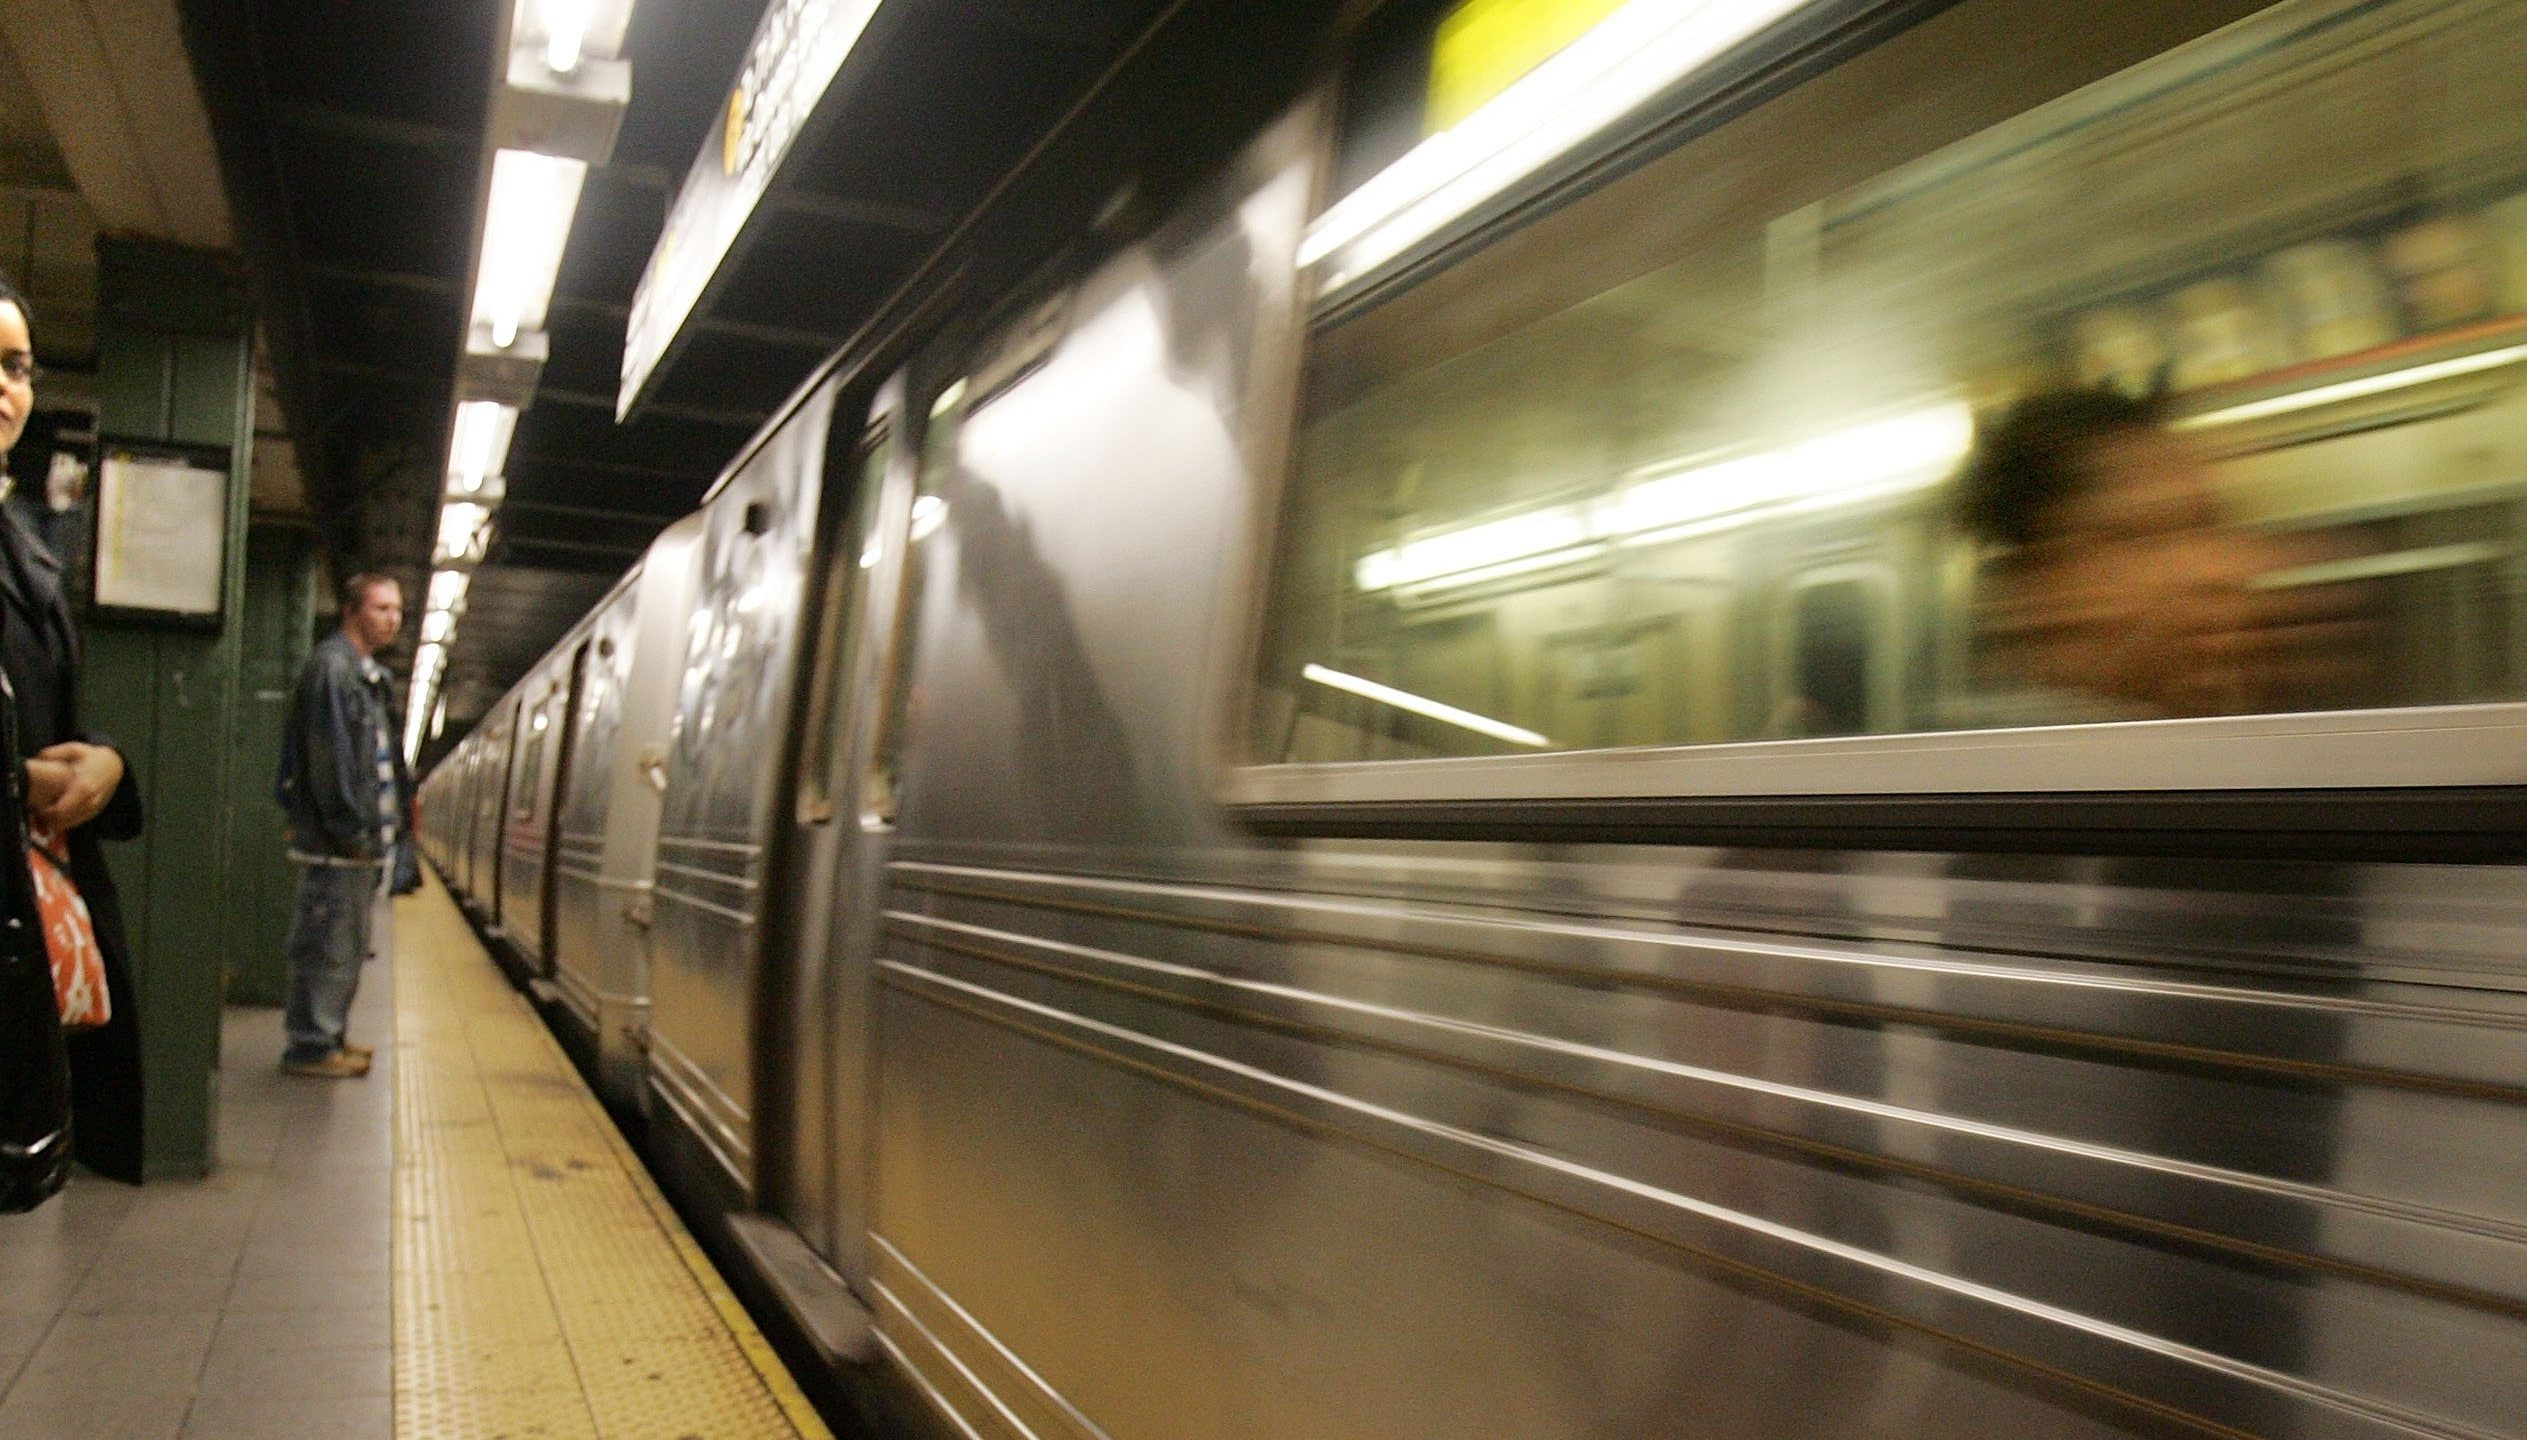 Major delays on J trains due to smoking tracks at CanalStreet